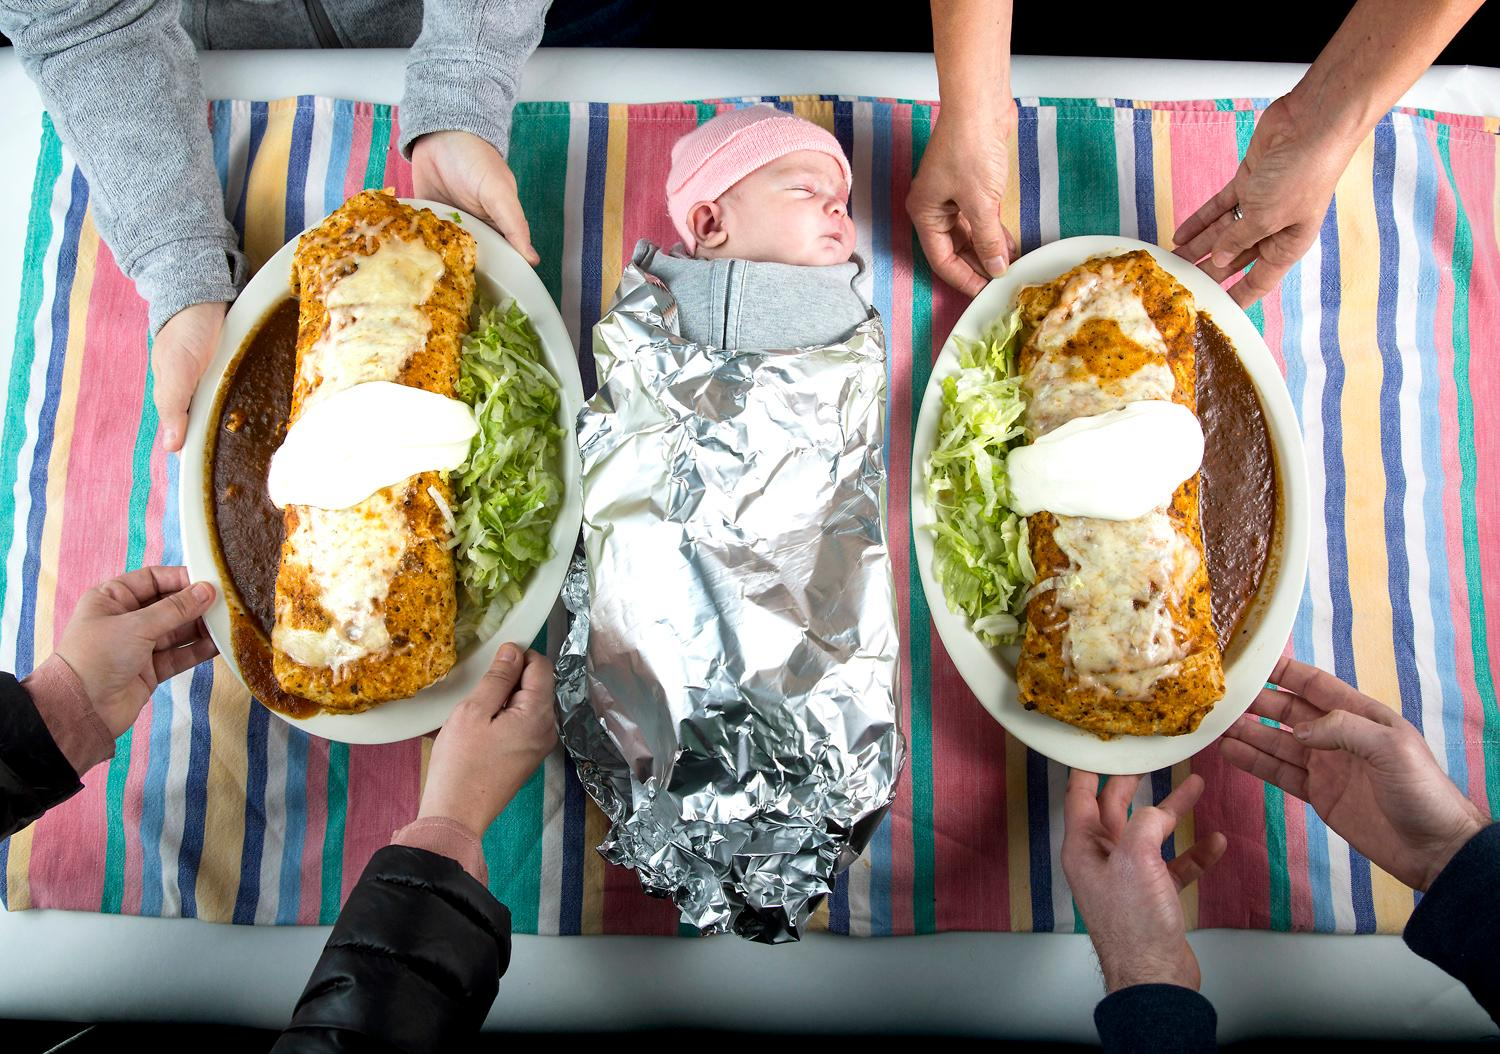 Gorditos Mexican Food boasts something called a Baby Burrito on their menu, claiming it's the size of a newborn infant. So we made a call, and brought a couple little ones (with their parents permission, of course) over to the restaurant for a little test - and photoshoot! The verdict? Little one-week-old Mollie was awfully darn close, while three-month-old Matilda was at least twice the size! Big thanks to both babies and their families for helping us with this fun shoot. Gorditos is located in Greenwood at 213 N. 85th St. (Image: Sy Bean / Seattle Refined){ }